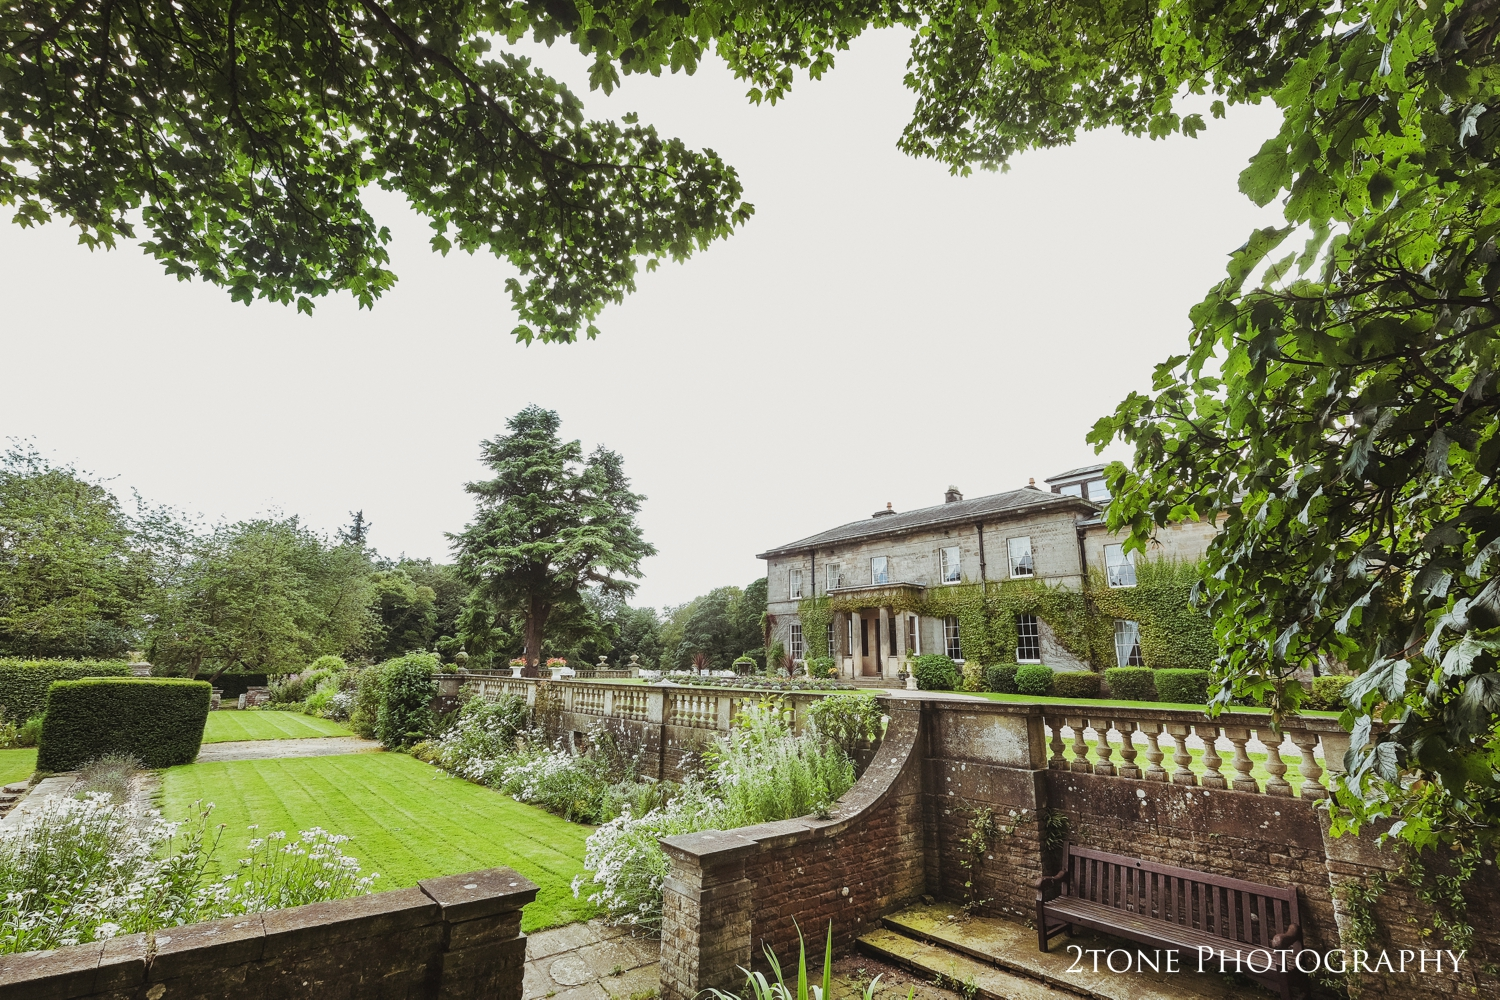 Setting the scene once again, Doxford Hall looking stunning in the summer time.